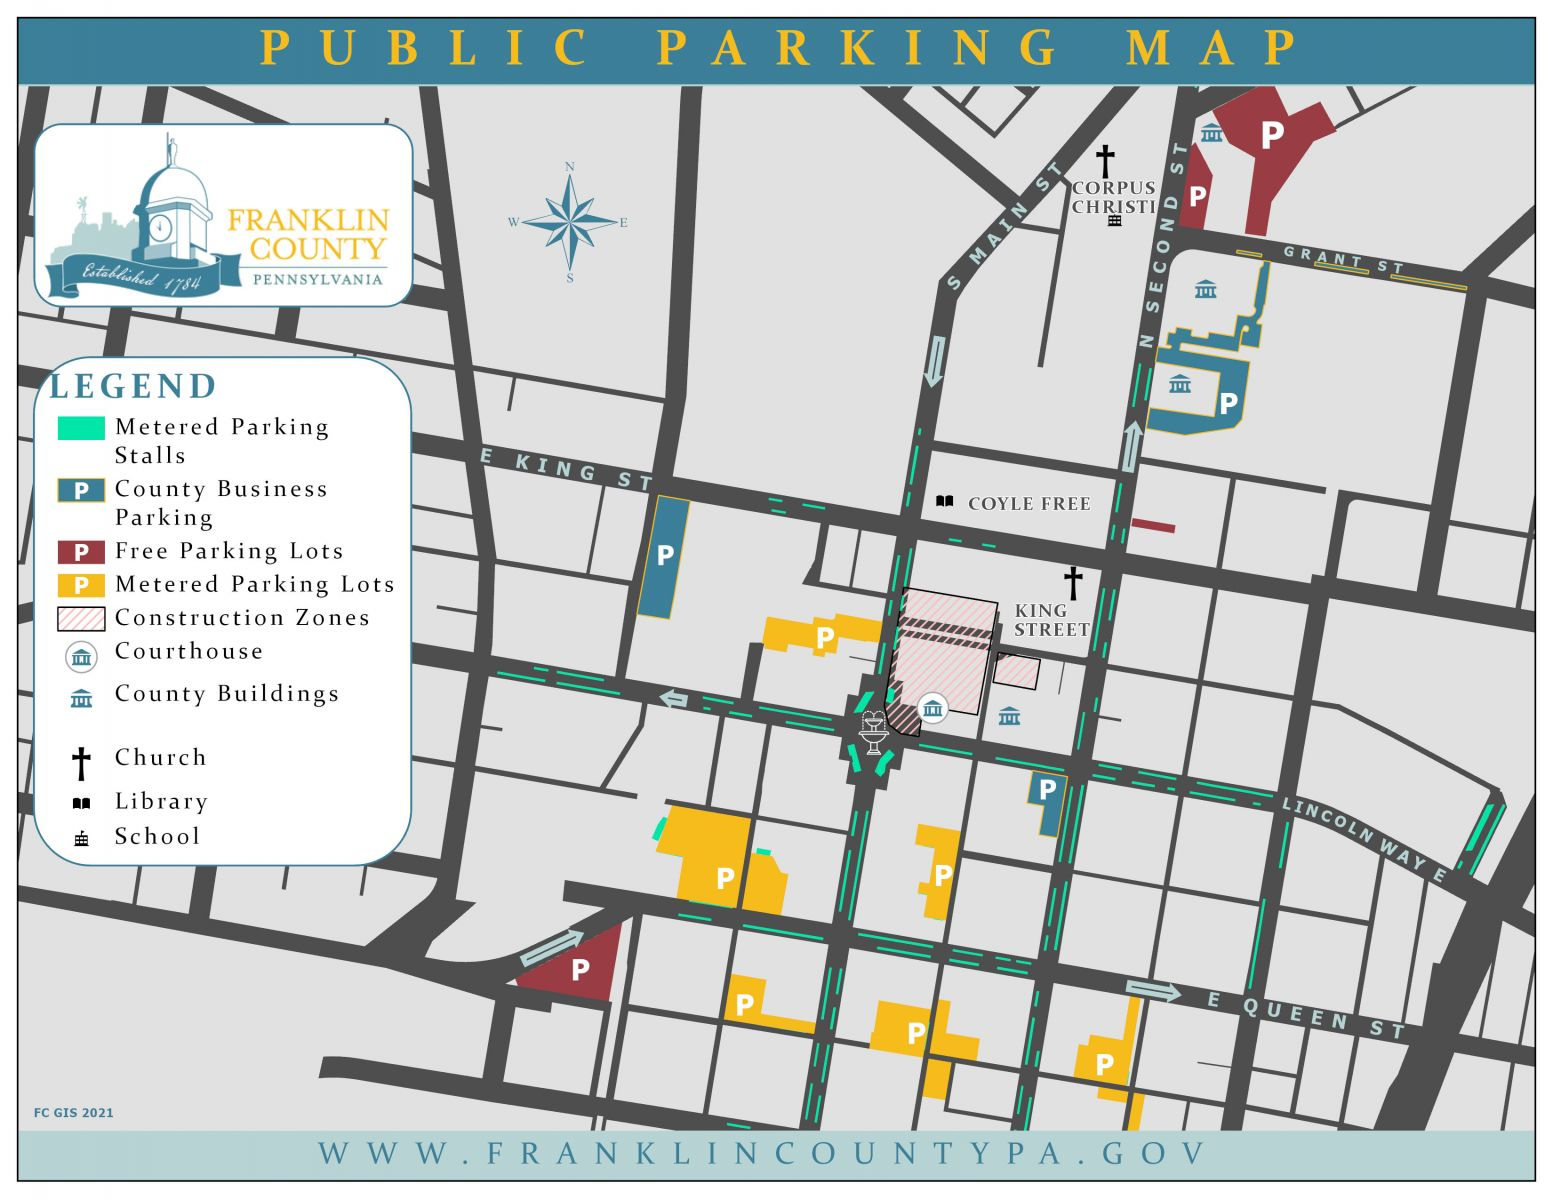 parking map with legend for visitors to county buildings